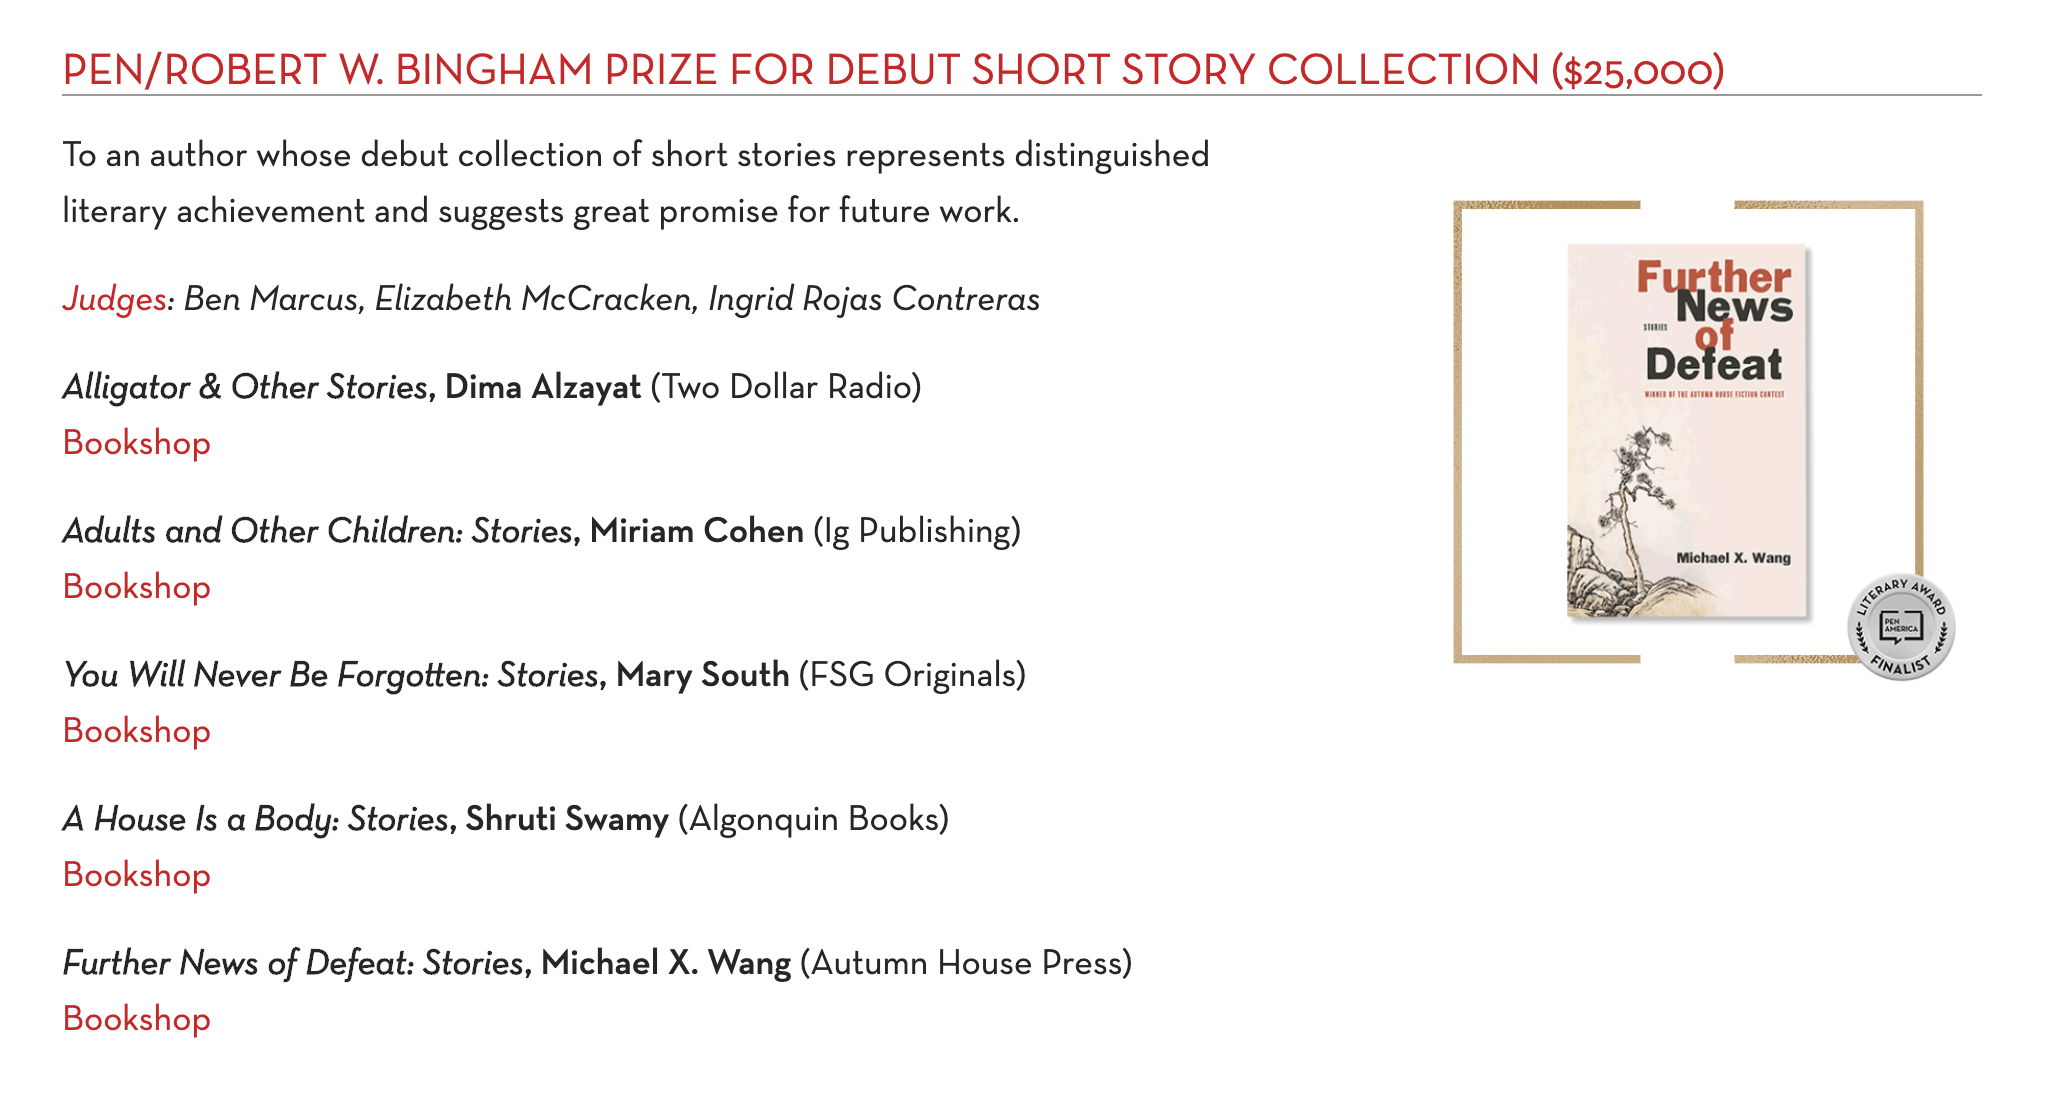 PEN/ROBERT W. BINGHAM PRIZE FOR DEBUT SHORT STORY COLLECTION